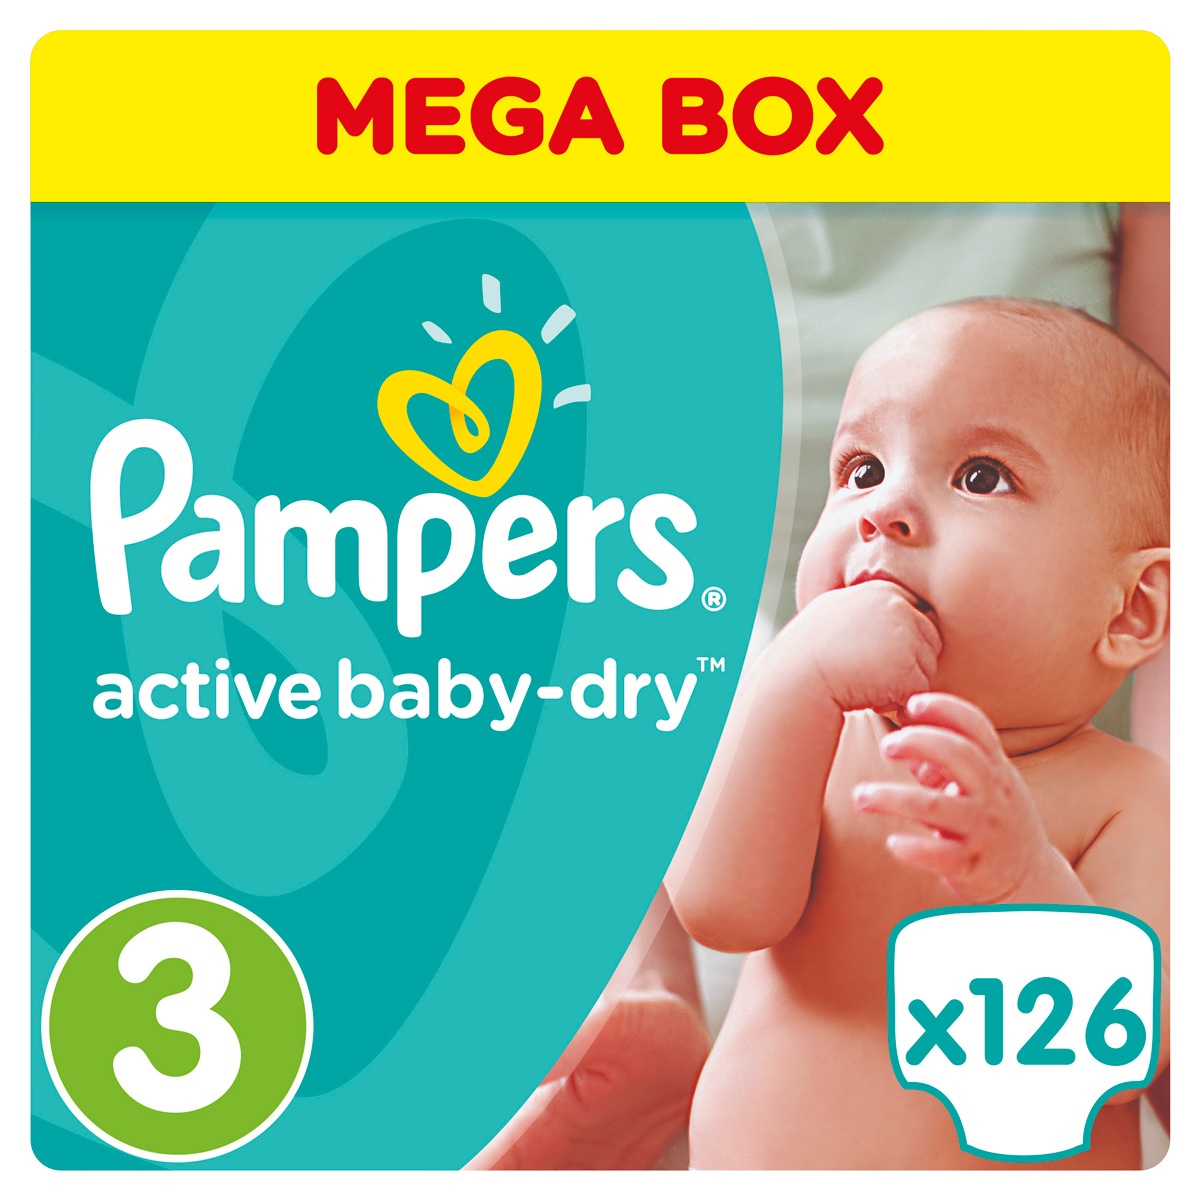 Pampers Подгузники Active Baby-Dry 5-9 кг (размер 3) 126 шт подгузники pampers active baby dry размер 4 7 14 кг 132 шт